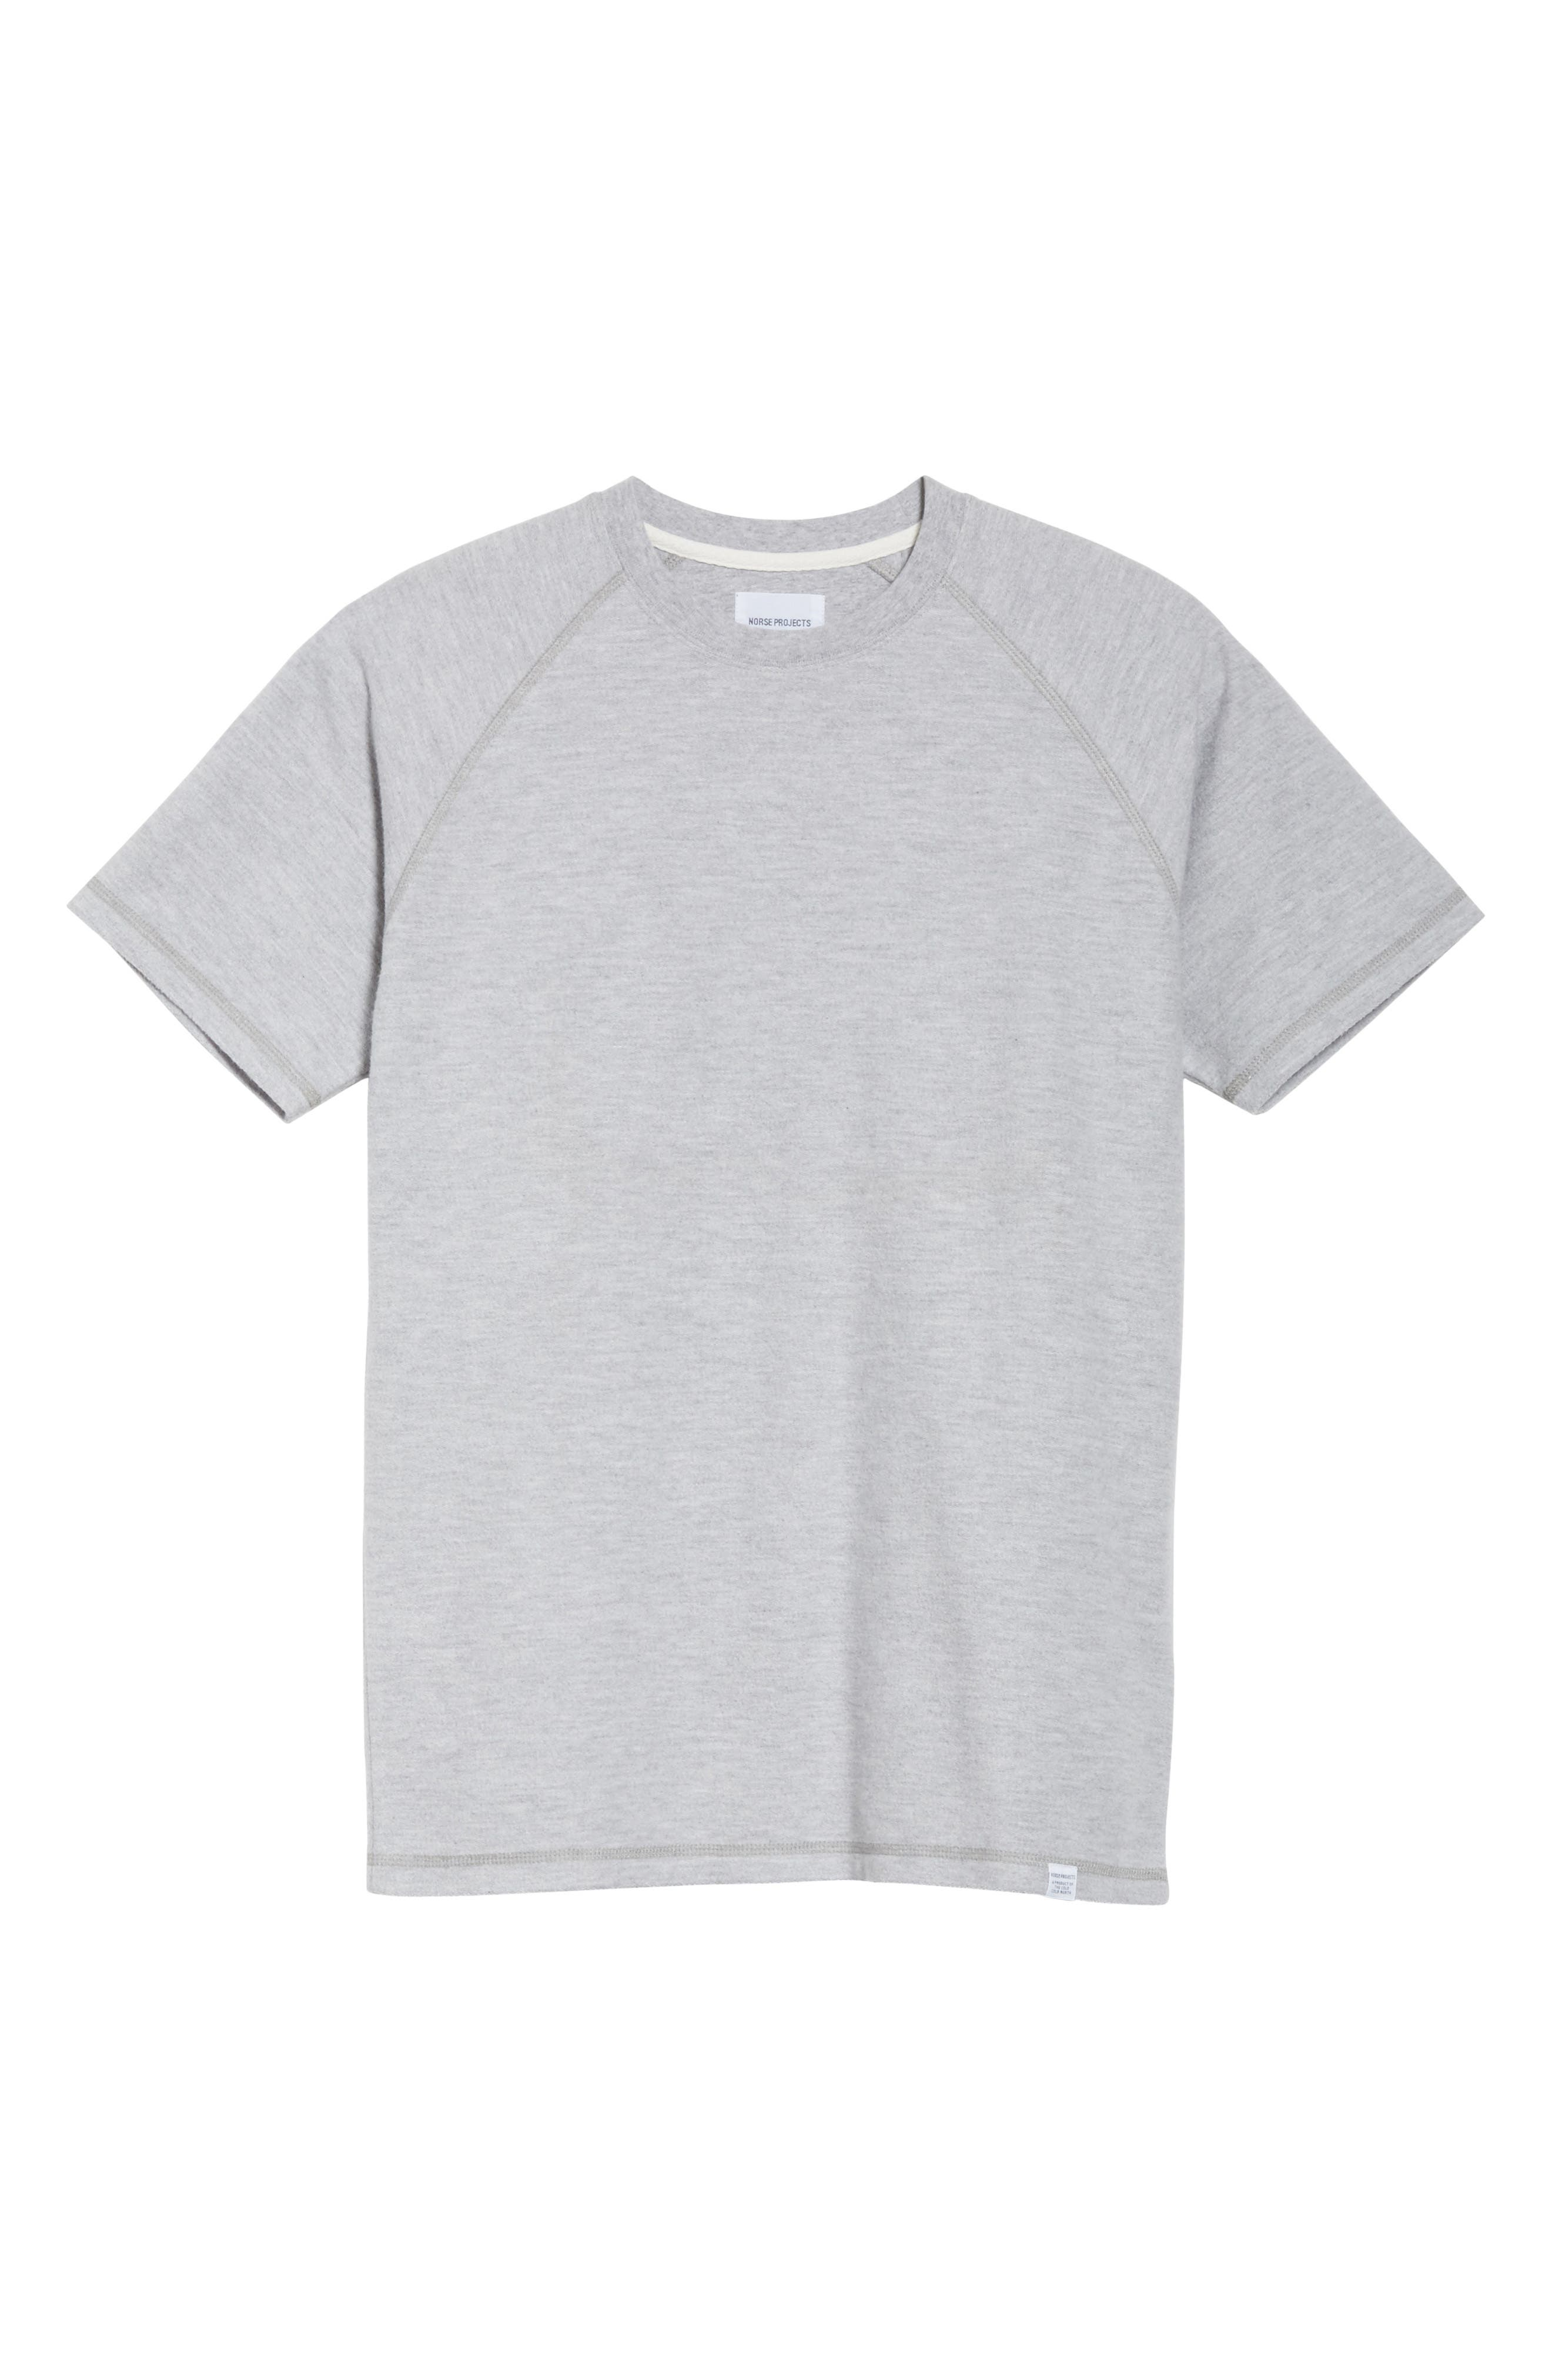 Victor Brushed Cotton T-Shirt,                             Alternate thumbnail 8, color,                             Light Grey